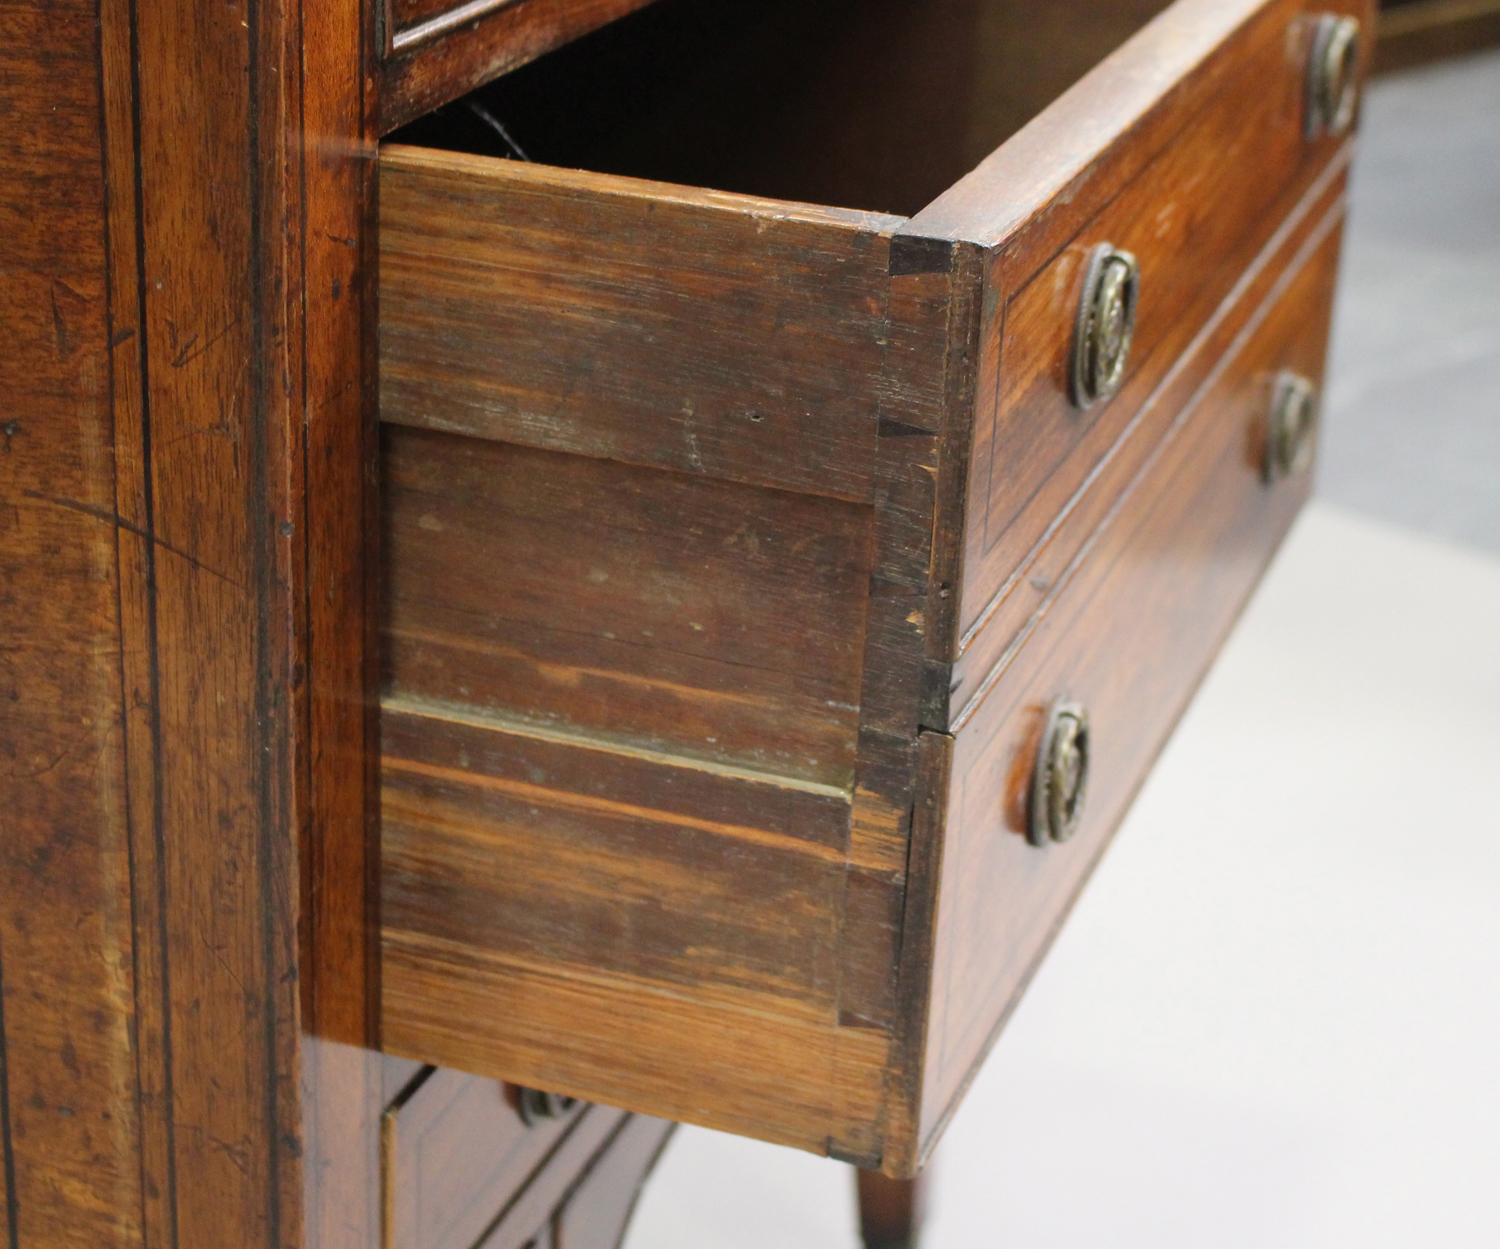 A George III mahogany dressing table, the double hinged top revealing a compartmentalized interior - Image 5 of 6